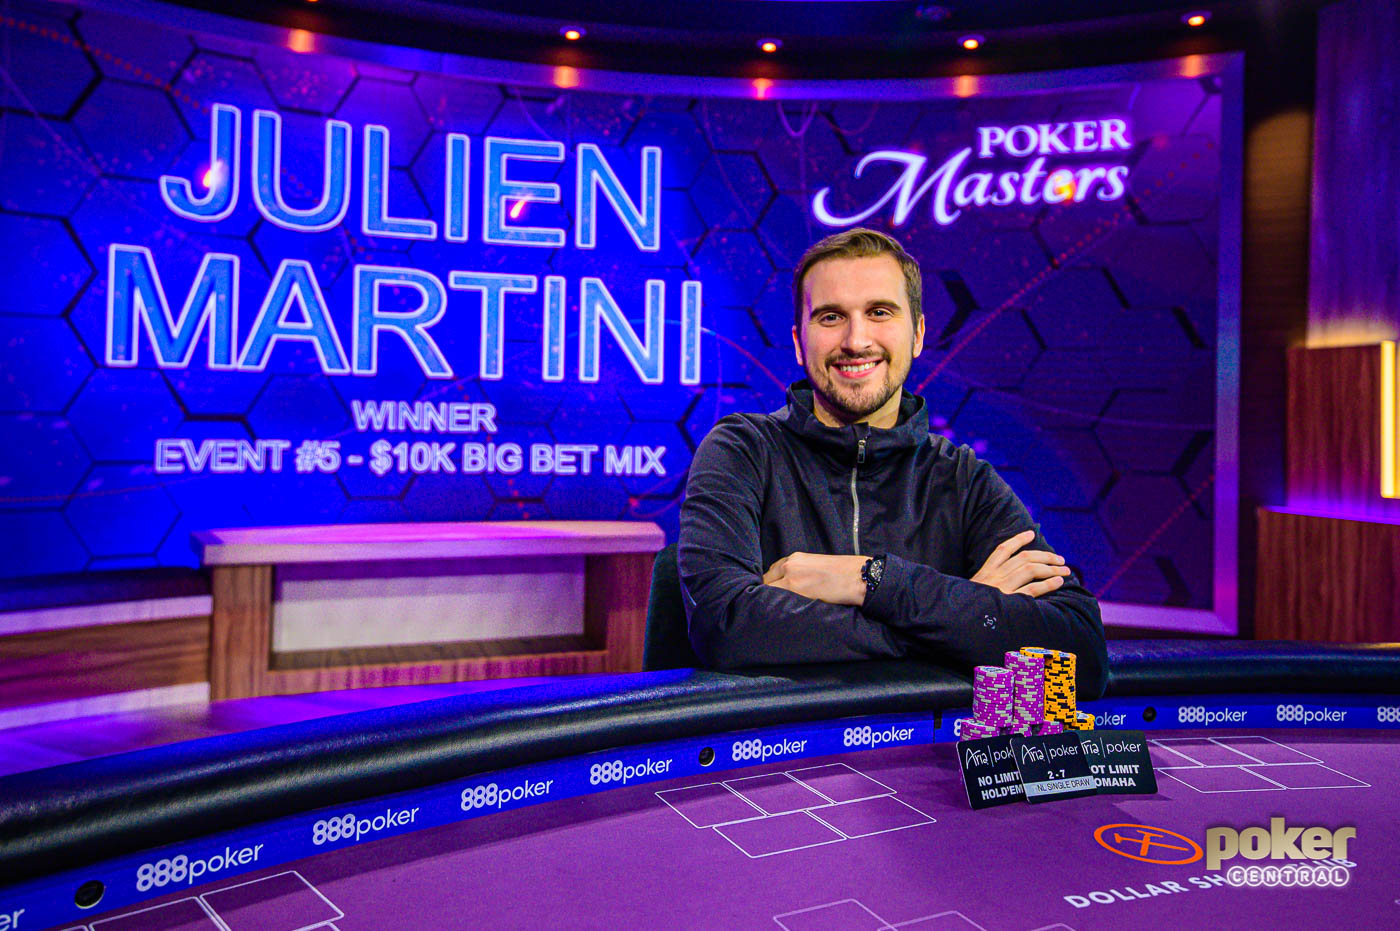 Julien Martini wins Event #5 $10,000 Big Bet Mix of the 2019 Poker Masters.